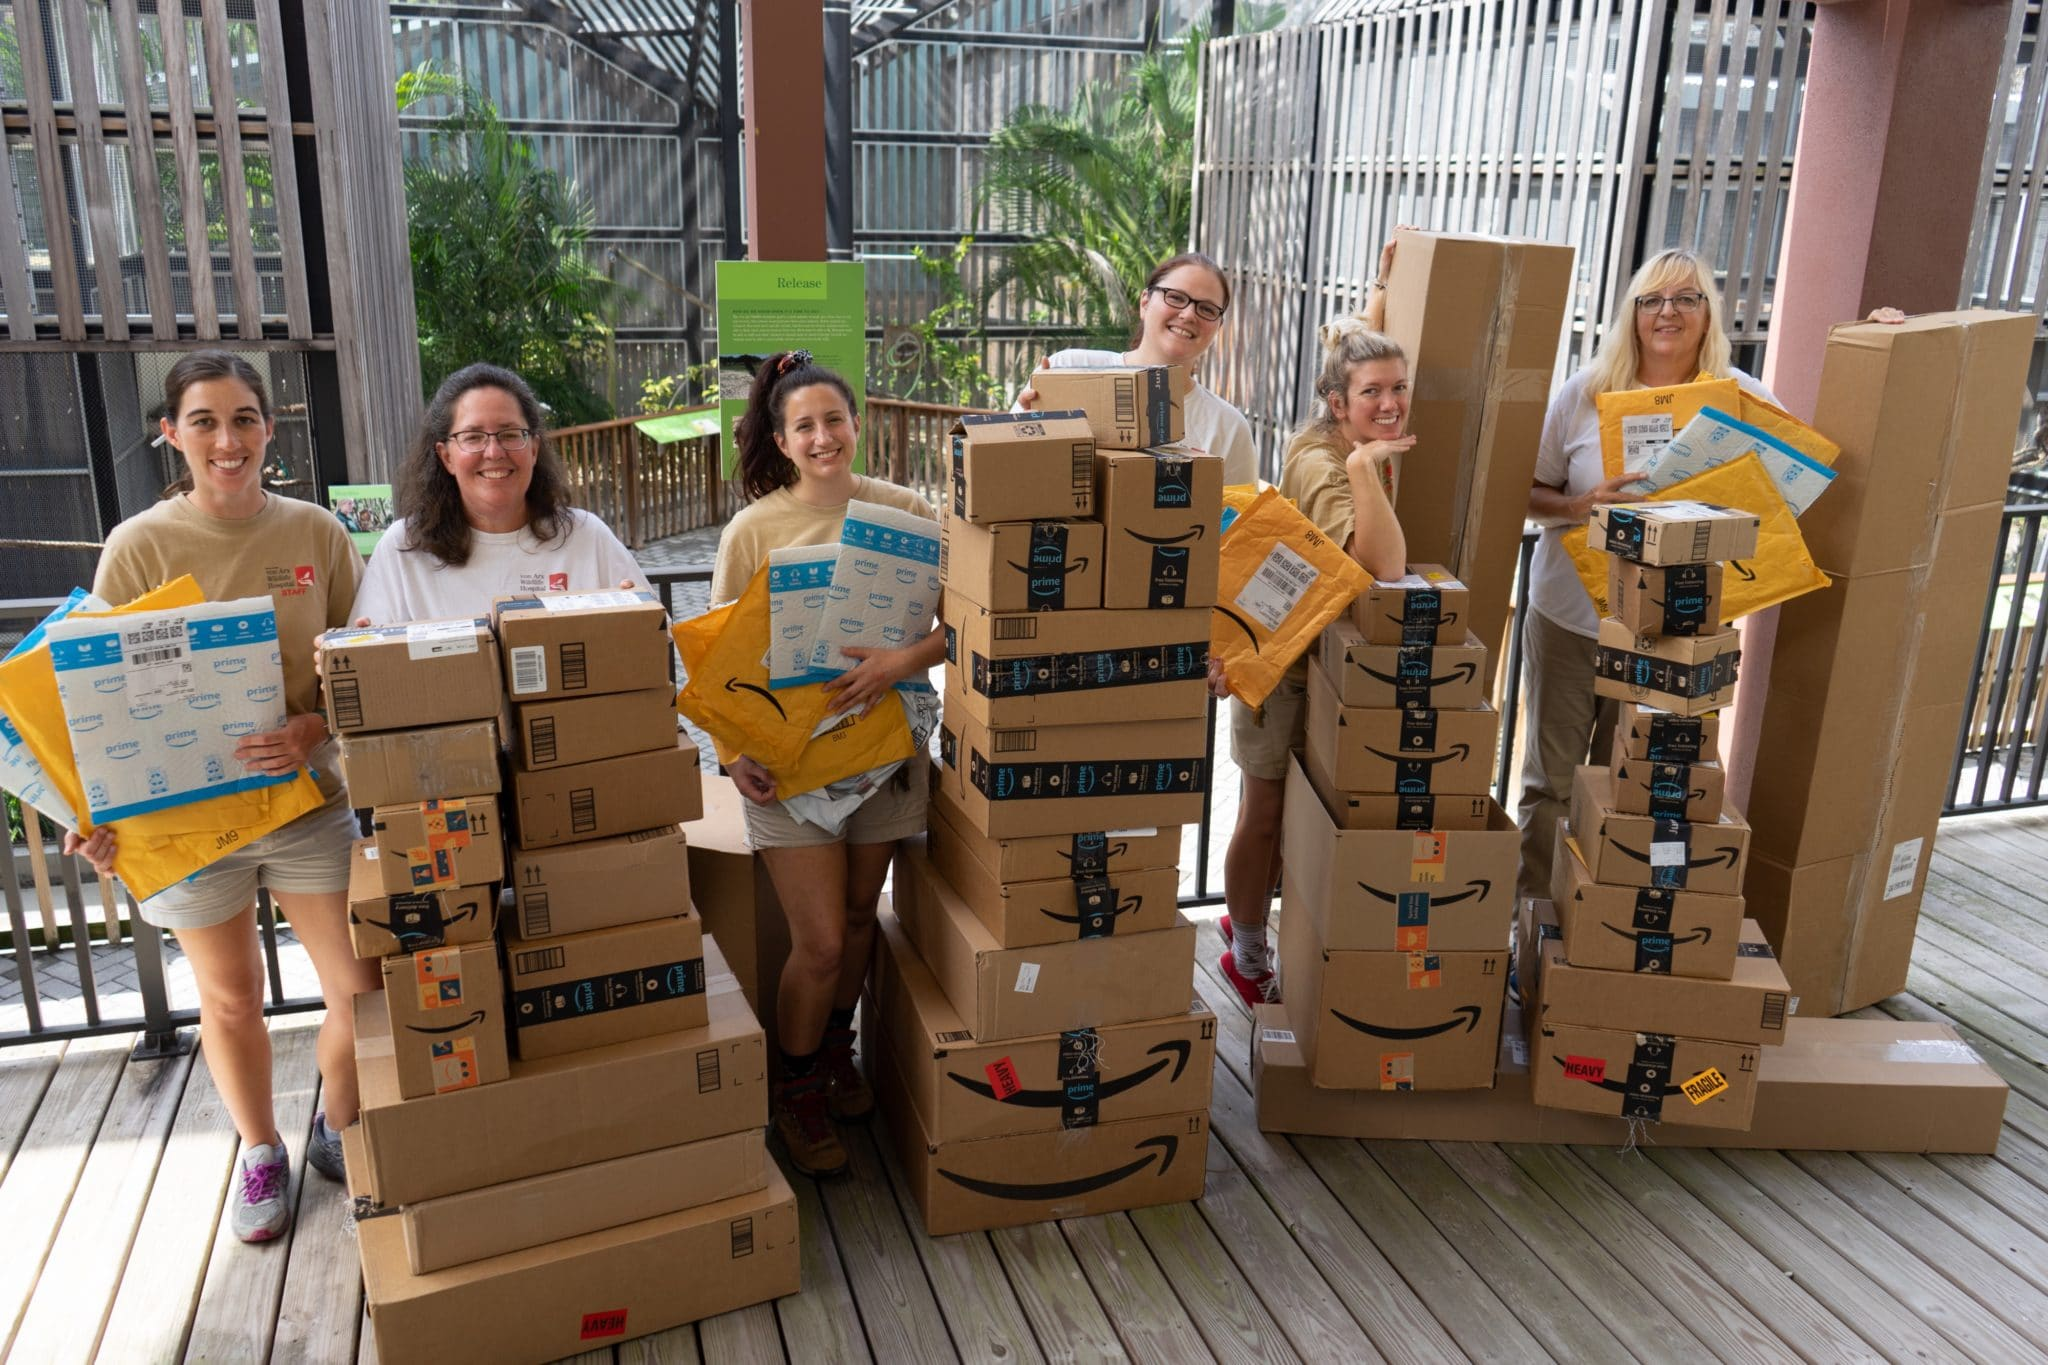 Wildlife staff in front of packages sent in from Amazon Wish LIst